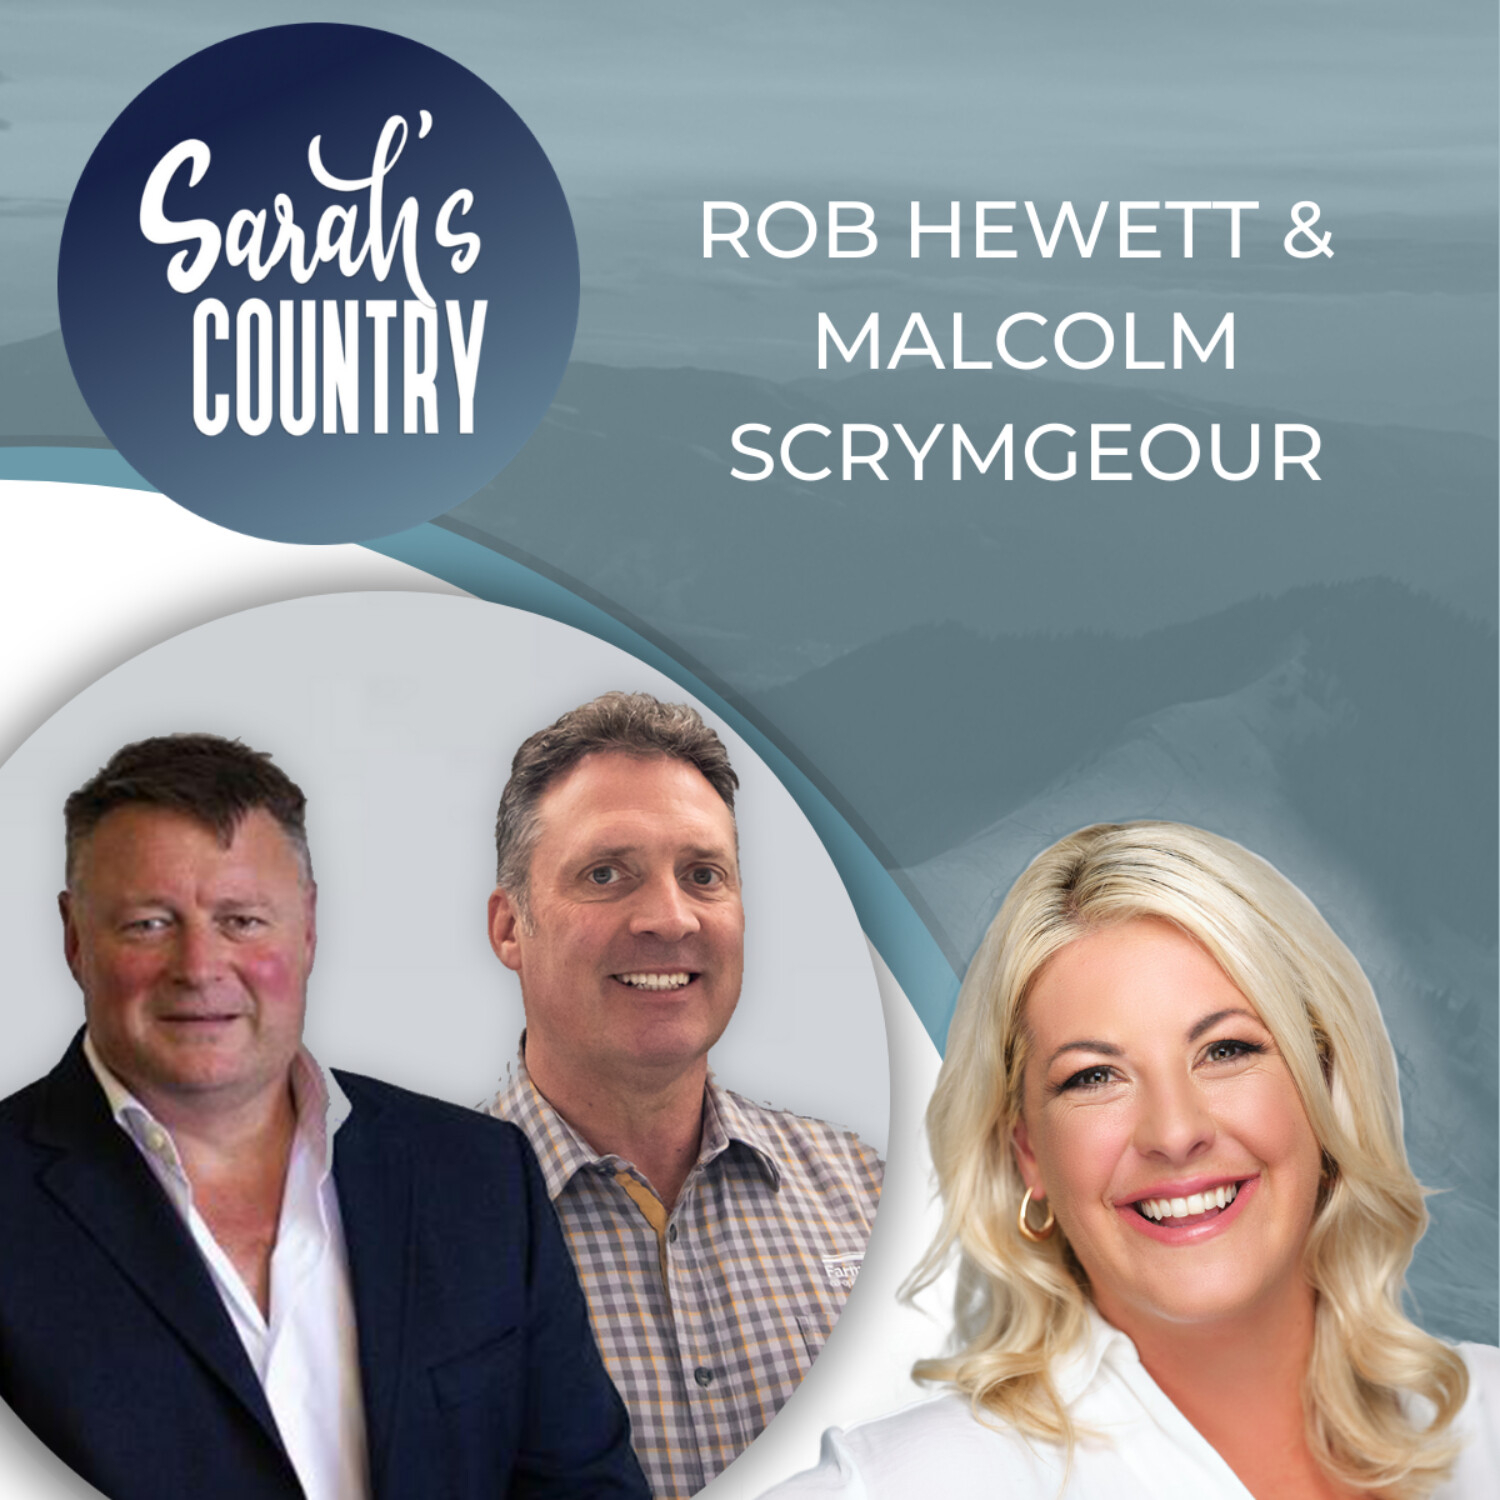 """2020 review and look ahead to 2021"" with Rob Hewett & Malcolm Scrymgeour"